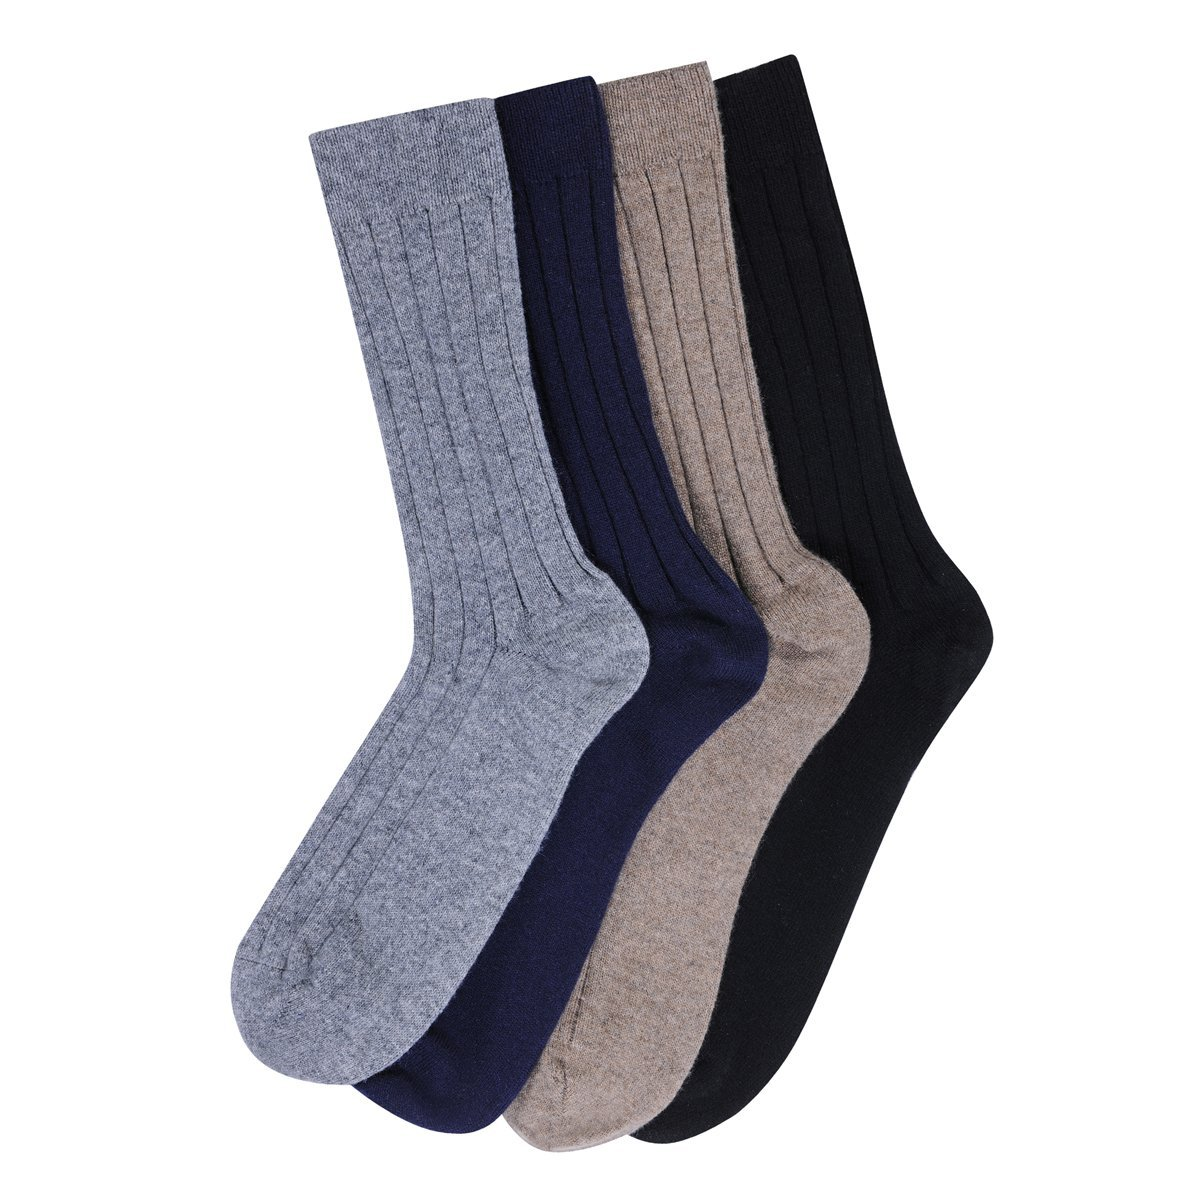 Large US11-13 Mens Otter Brown Cashmere Mix Socks Made in Scotland 85/% Cashmere